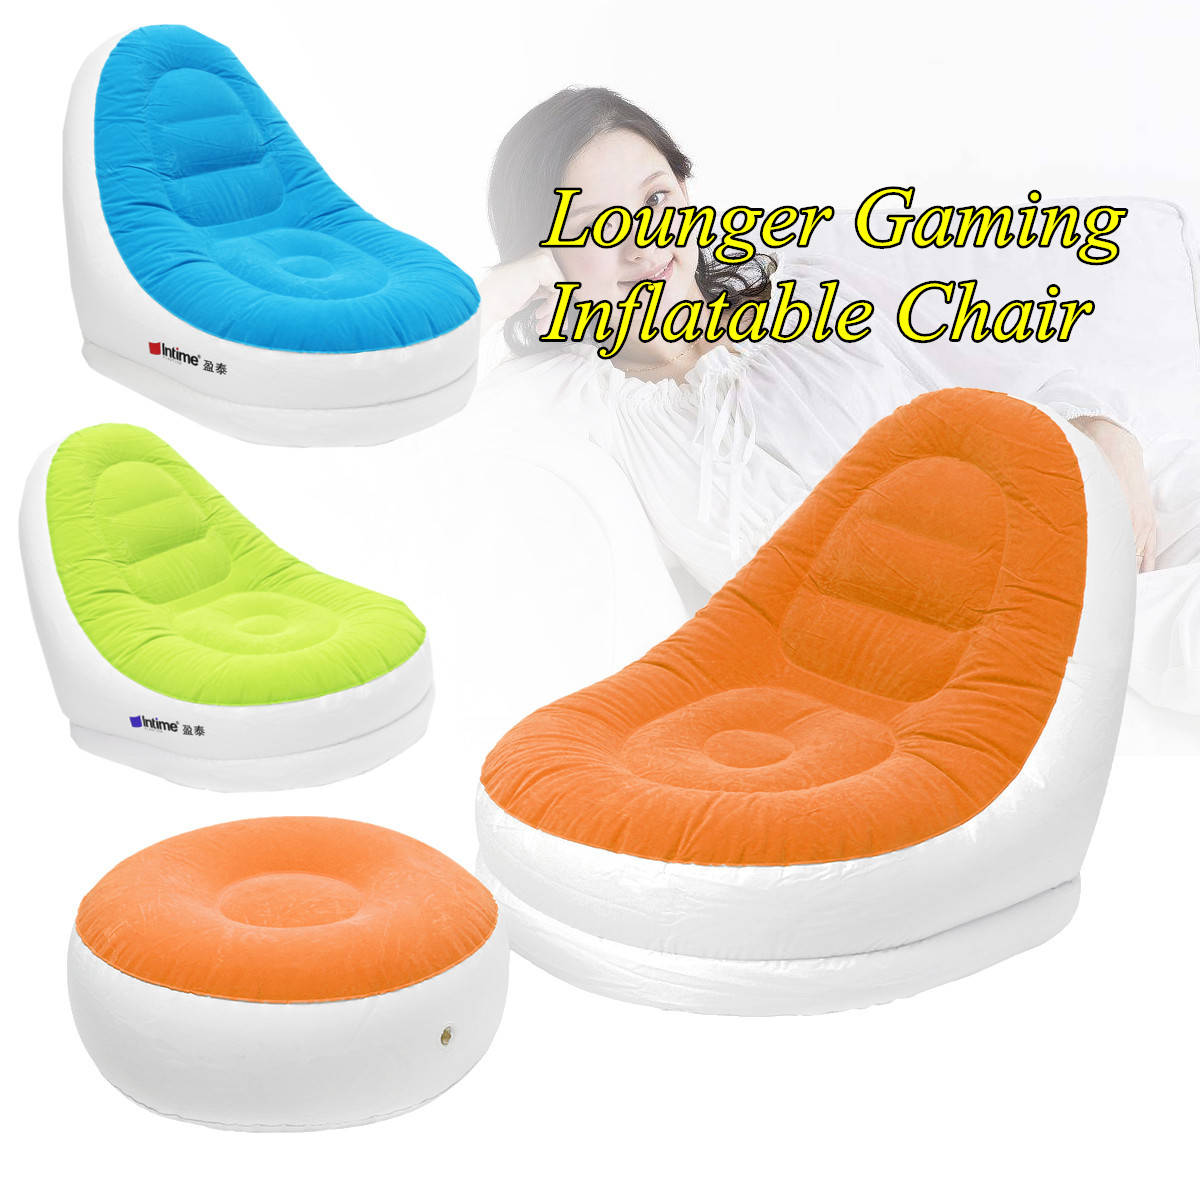 Flocking Inflatable Sofa With Foot Rest Cushion Garden Lounger Home Living Room Air Lounge Chairs Furniture InfatablesFlocking Inflatable Sofa With Foot Rest Cushion Garden Lounger Home Living Room Air Lounge Chairs Furniture Infatables